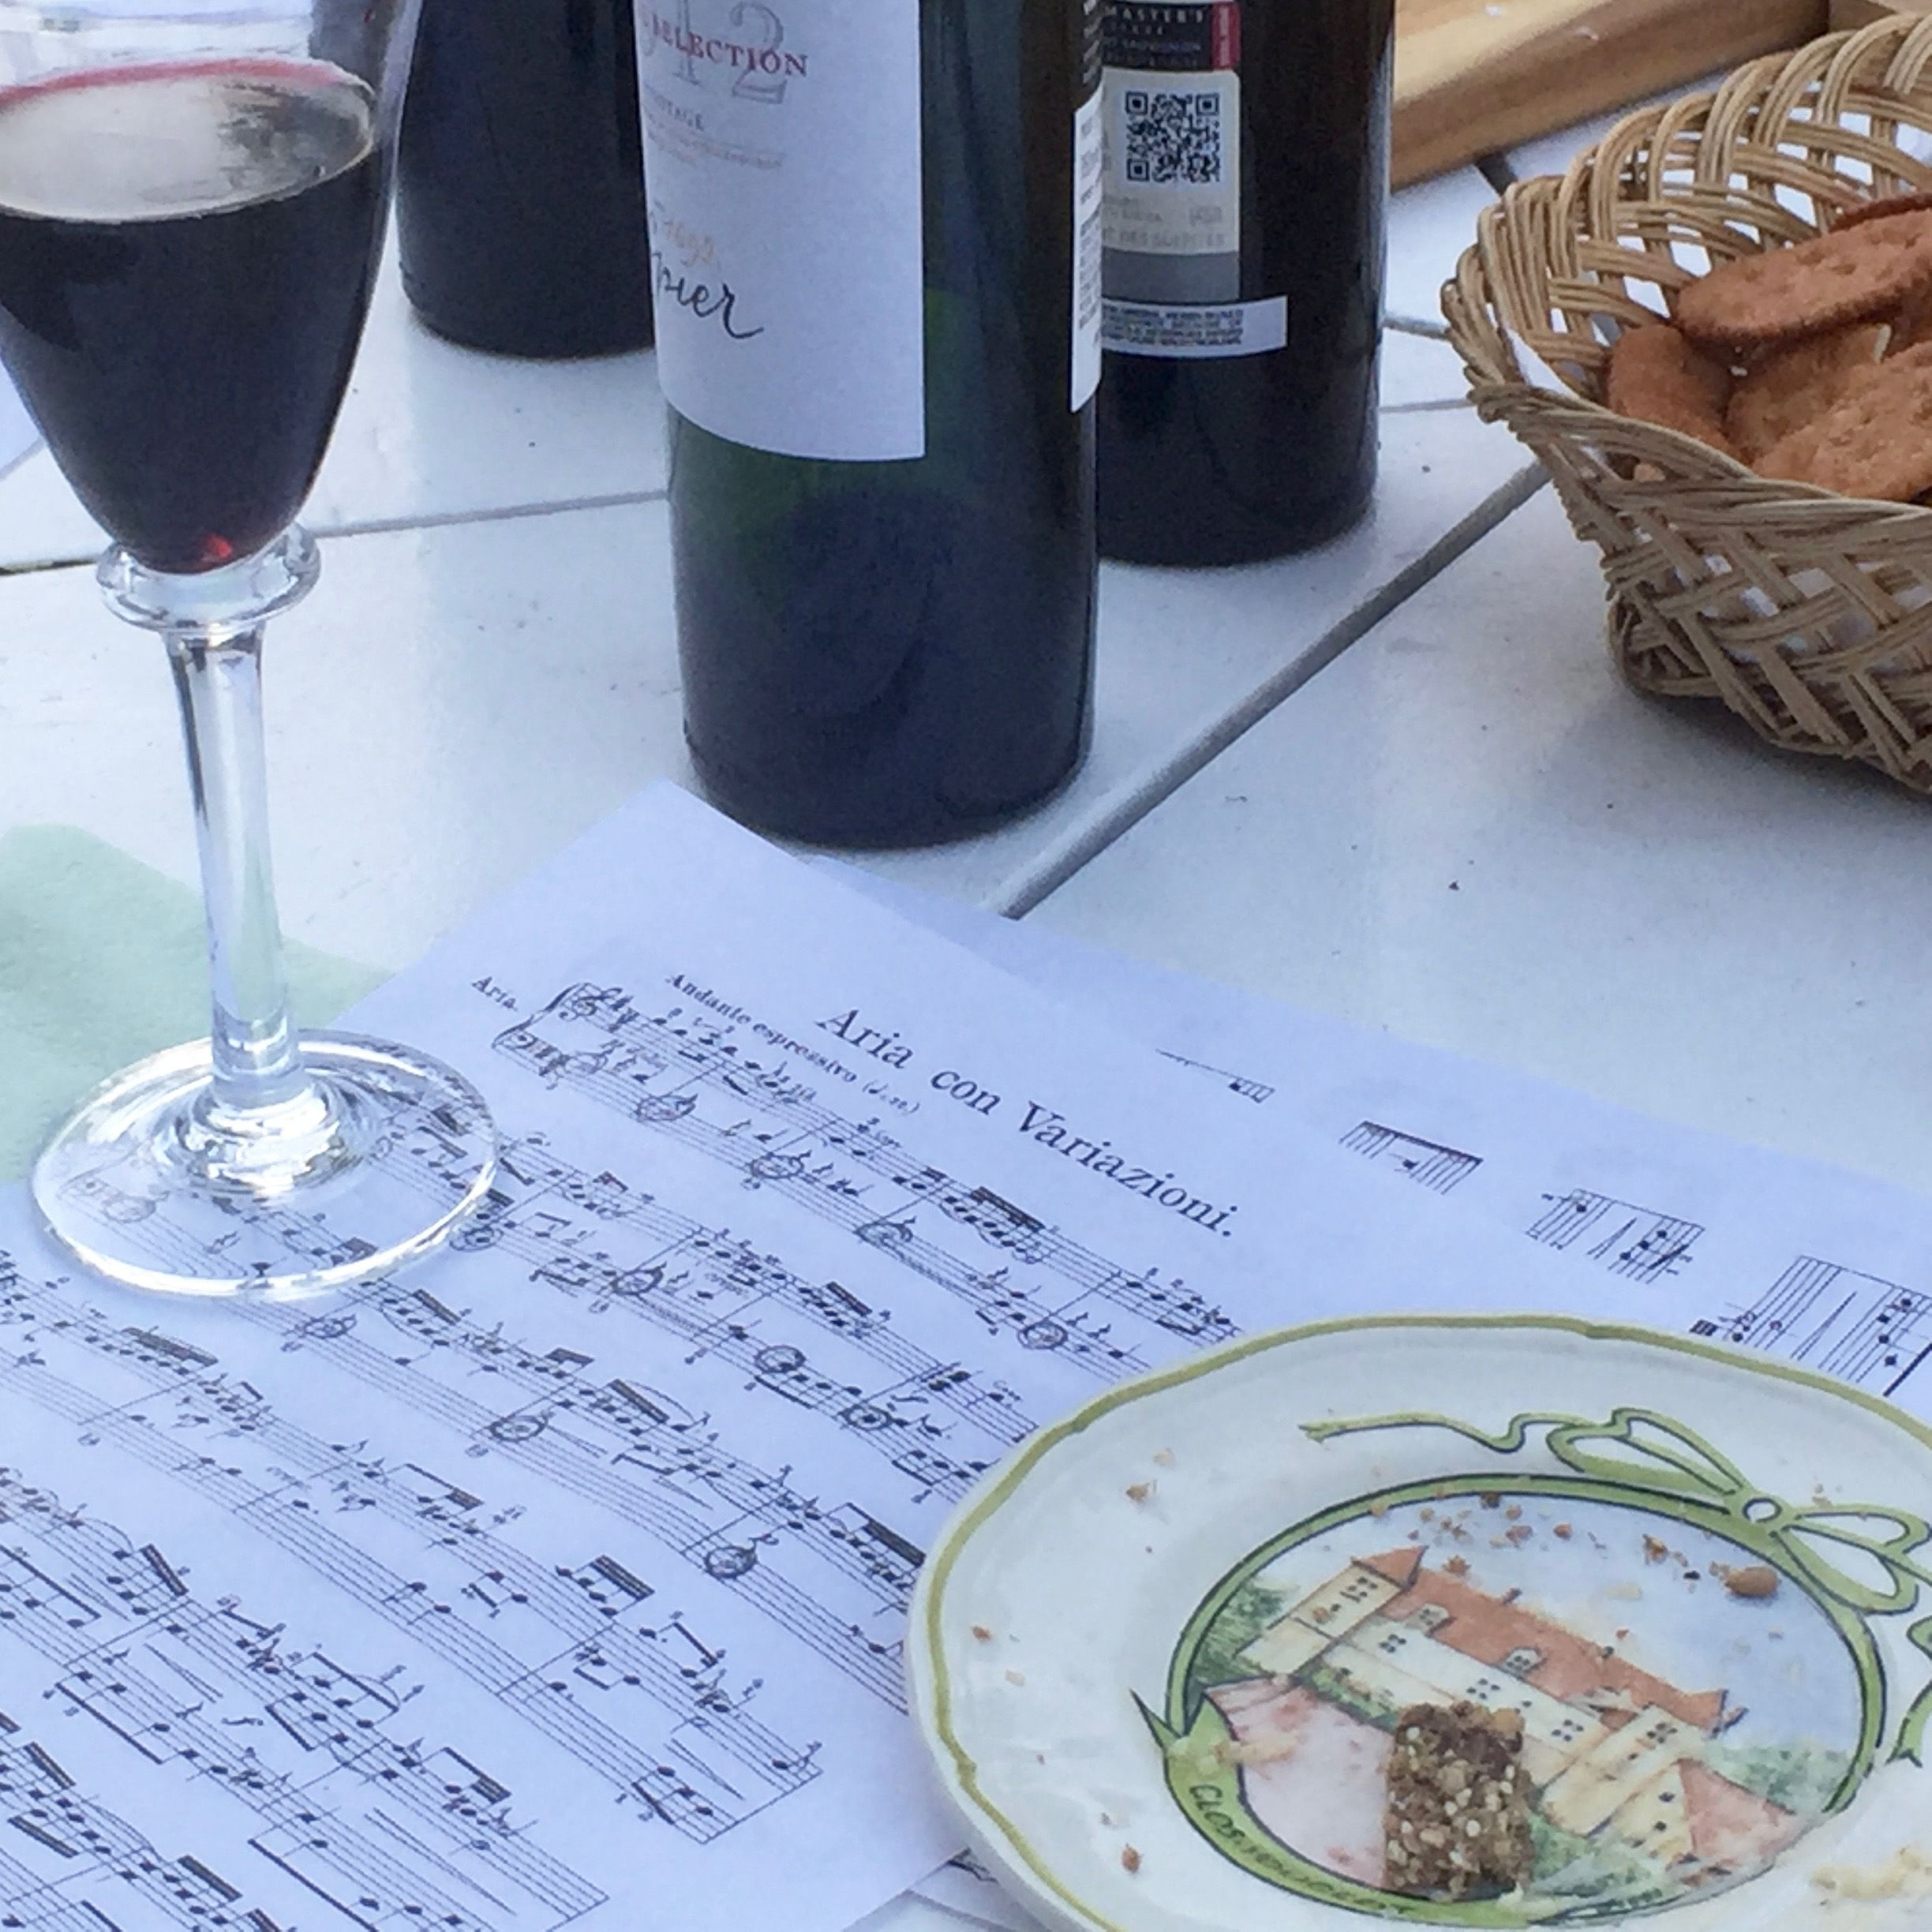 Classical Music Listening and Wine Appreciation